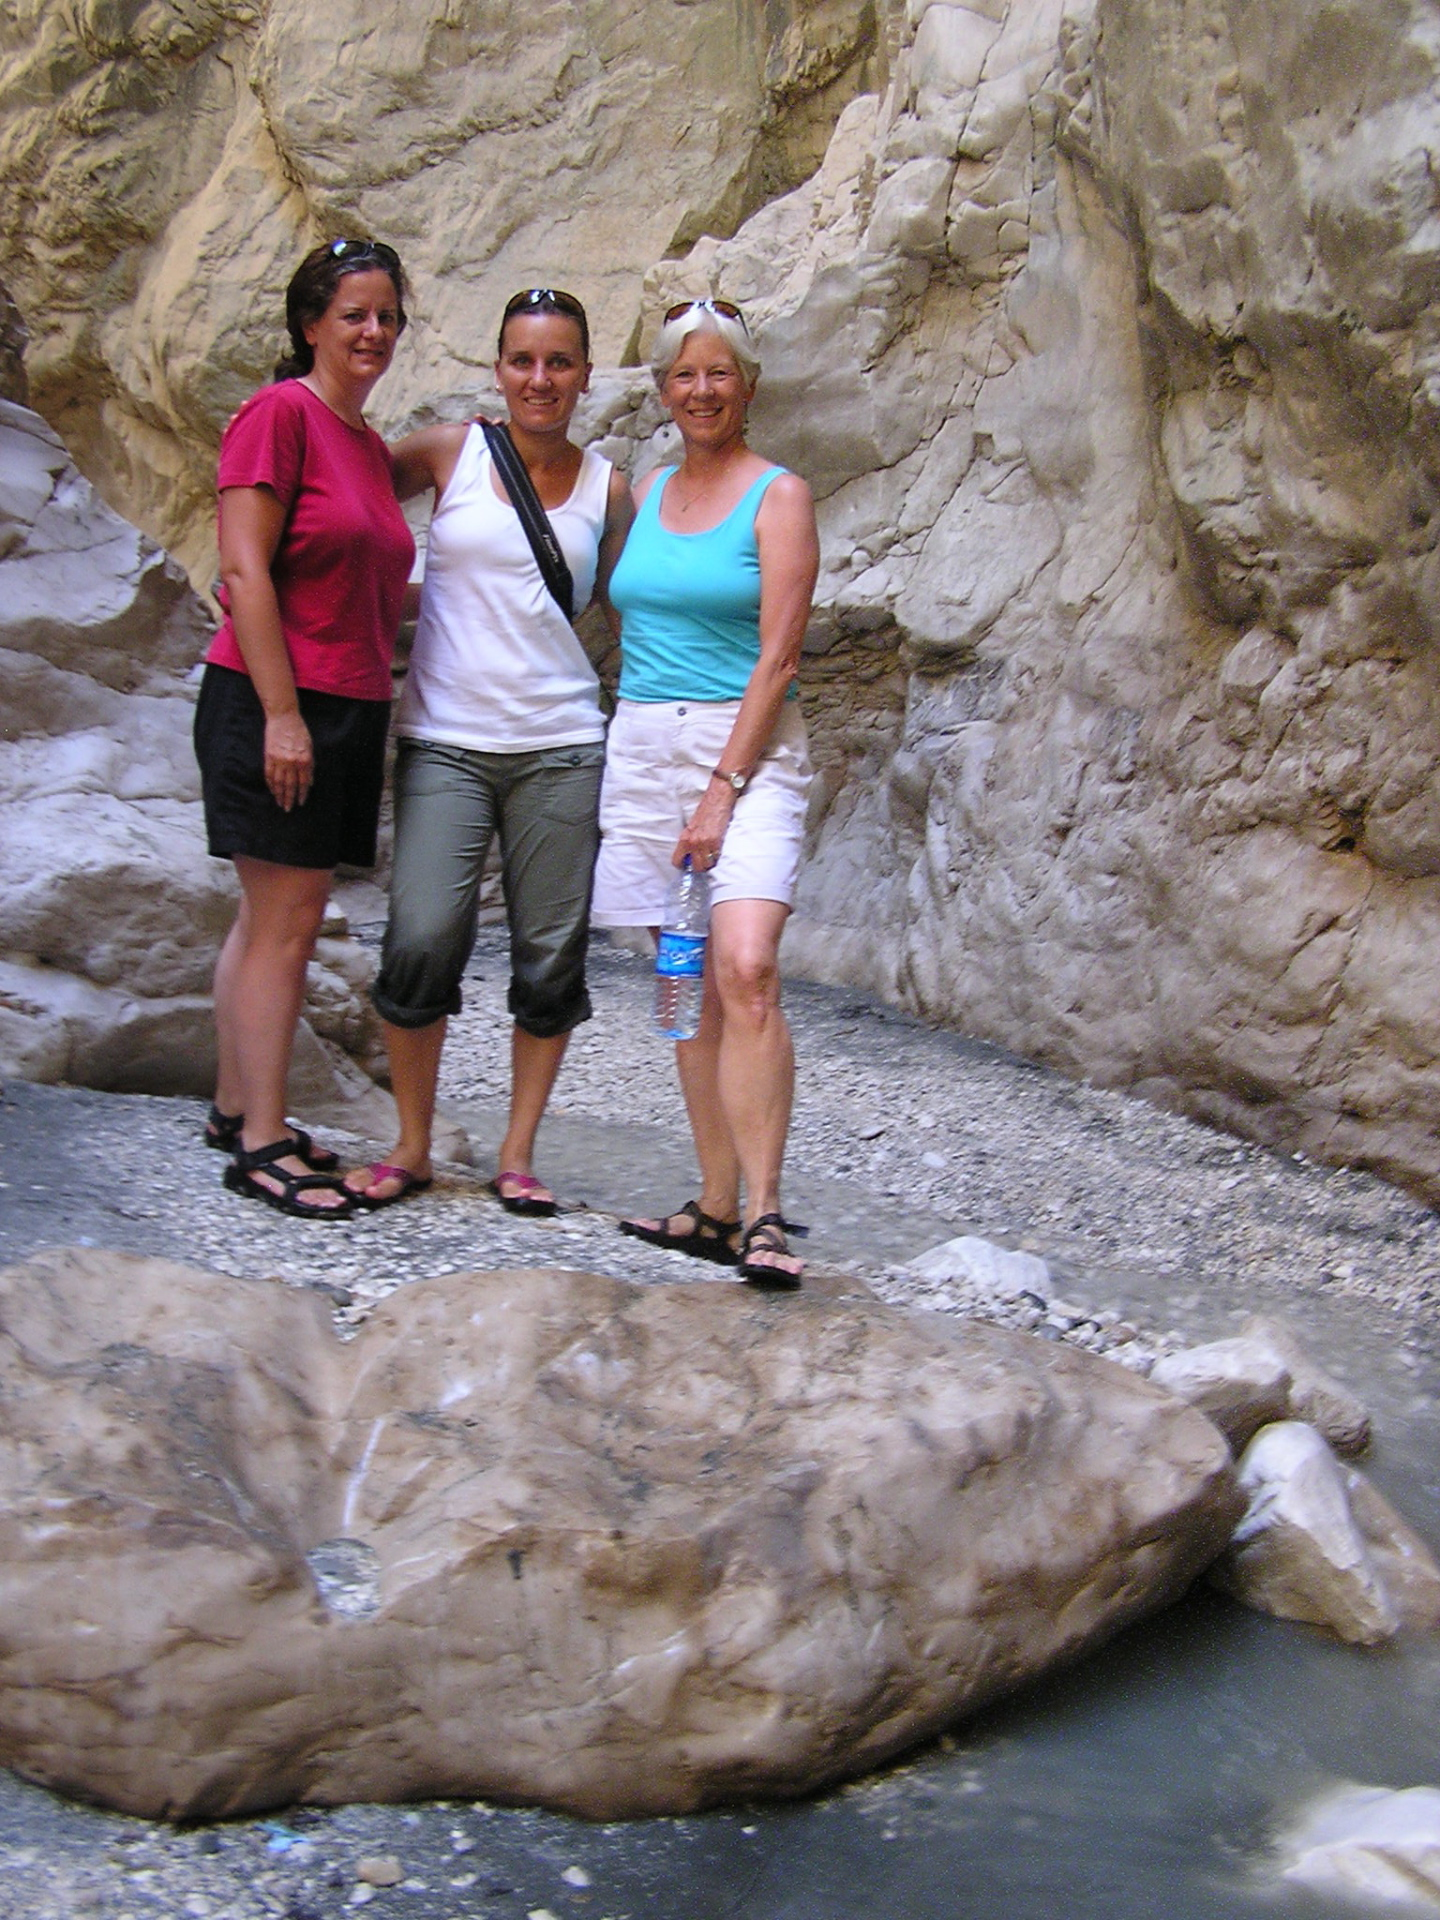 Shelly, Jana and I hiked up the stunning Saklikent Gorge, which was all marble. Fetihye, Turkey: chapter 60, You must only to love them. http://mershon.wordpress.com